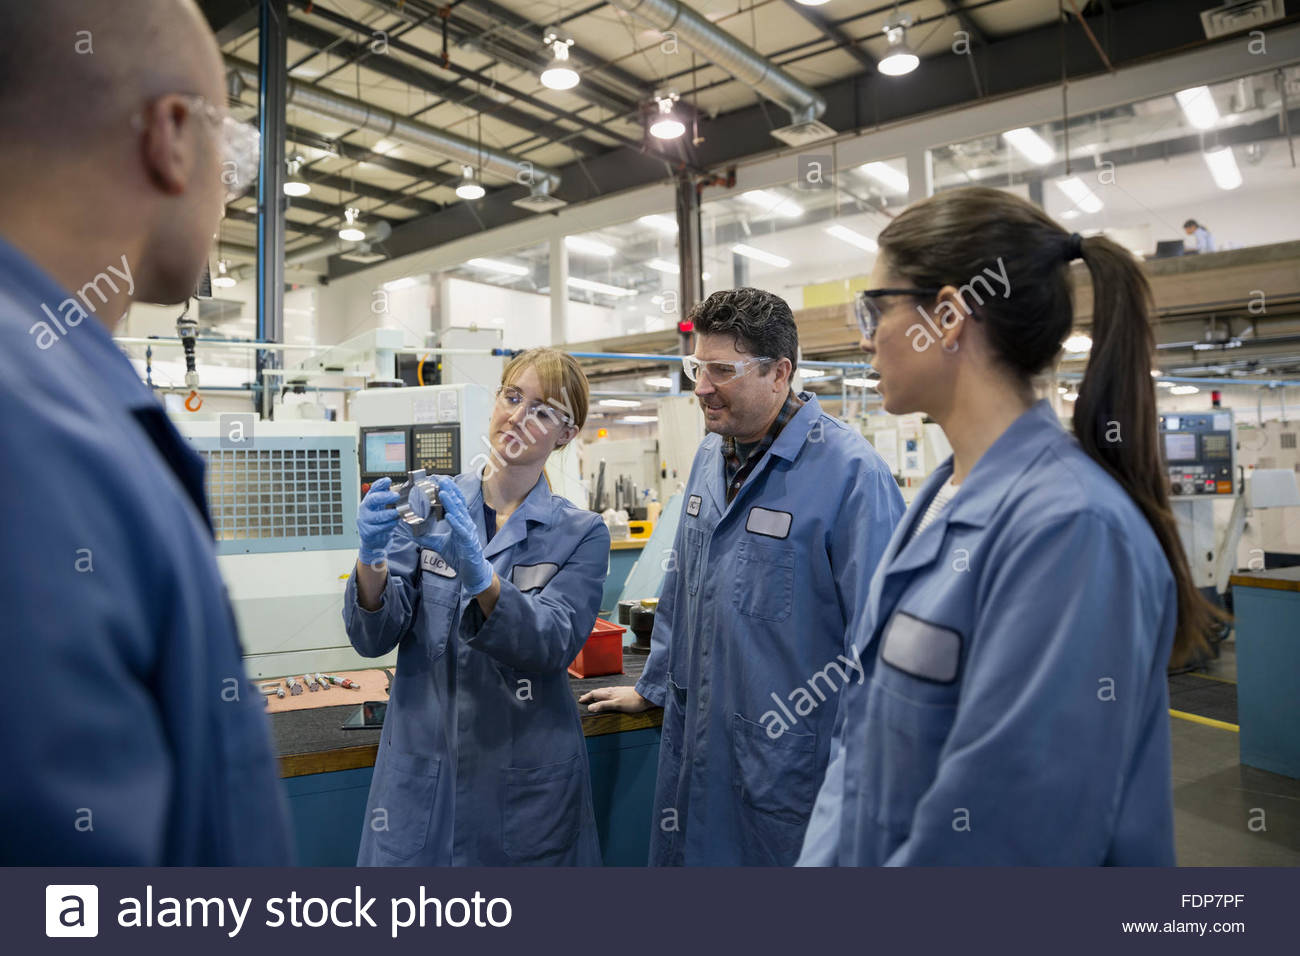 Workers discussing part in factory - Stock Image